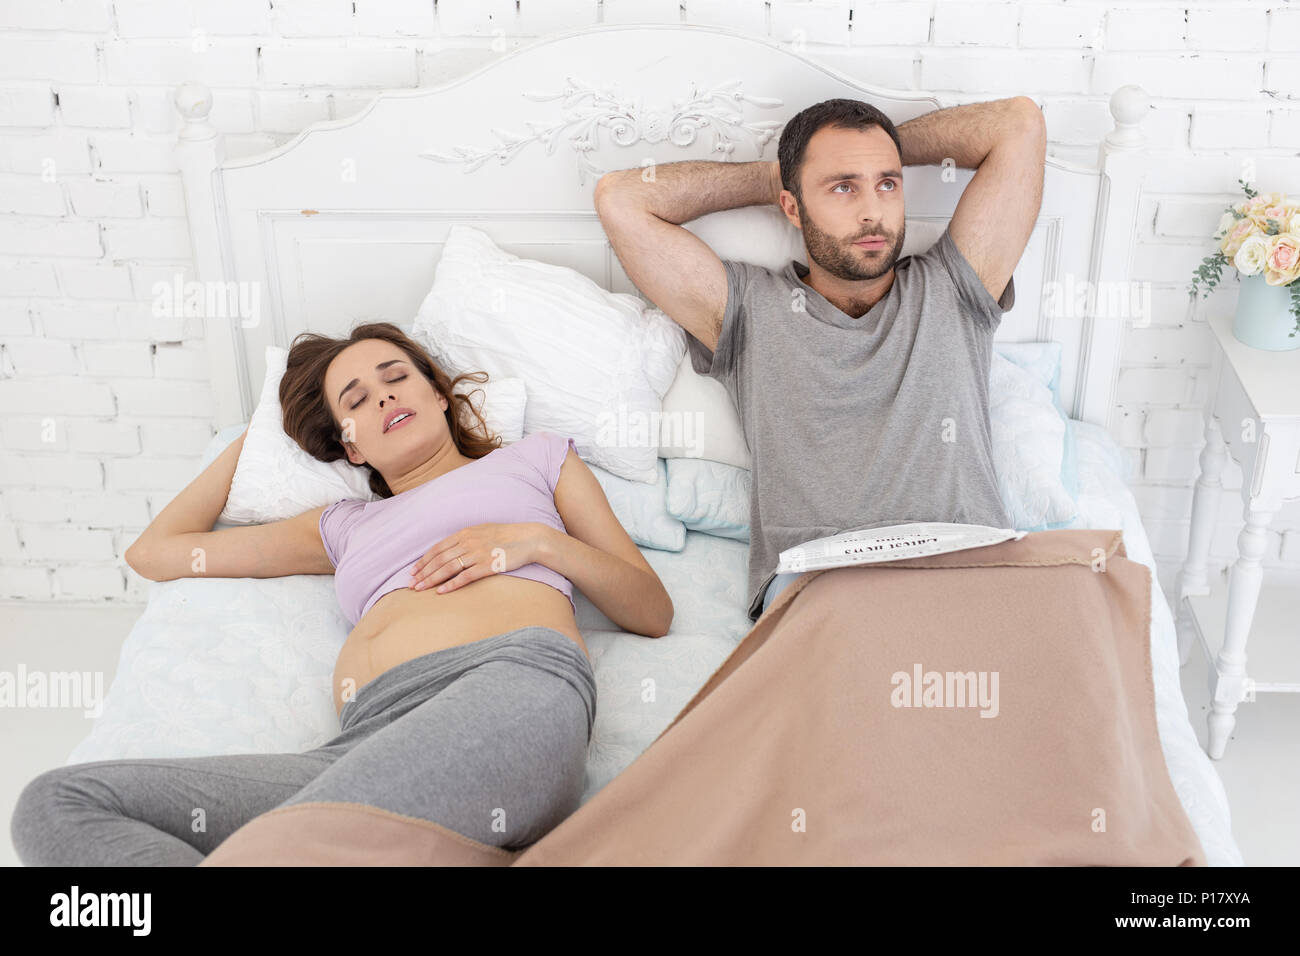 Attractive pregnant woman grunting while sleeping - Stock Image